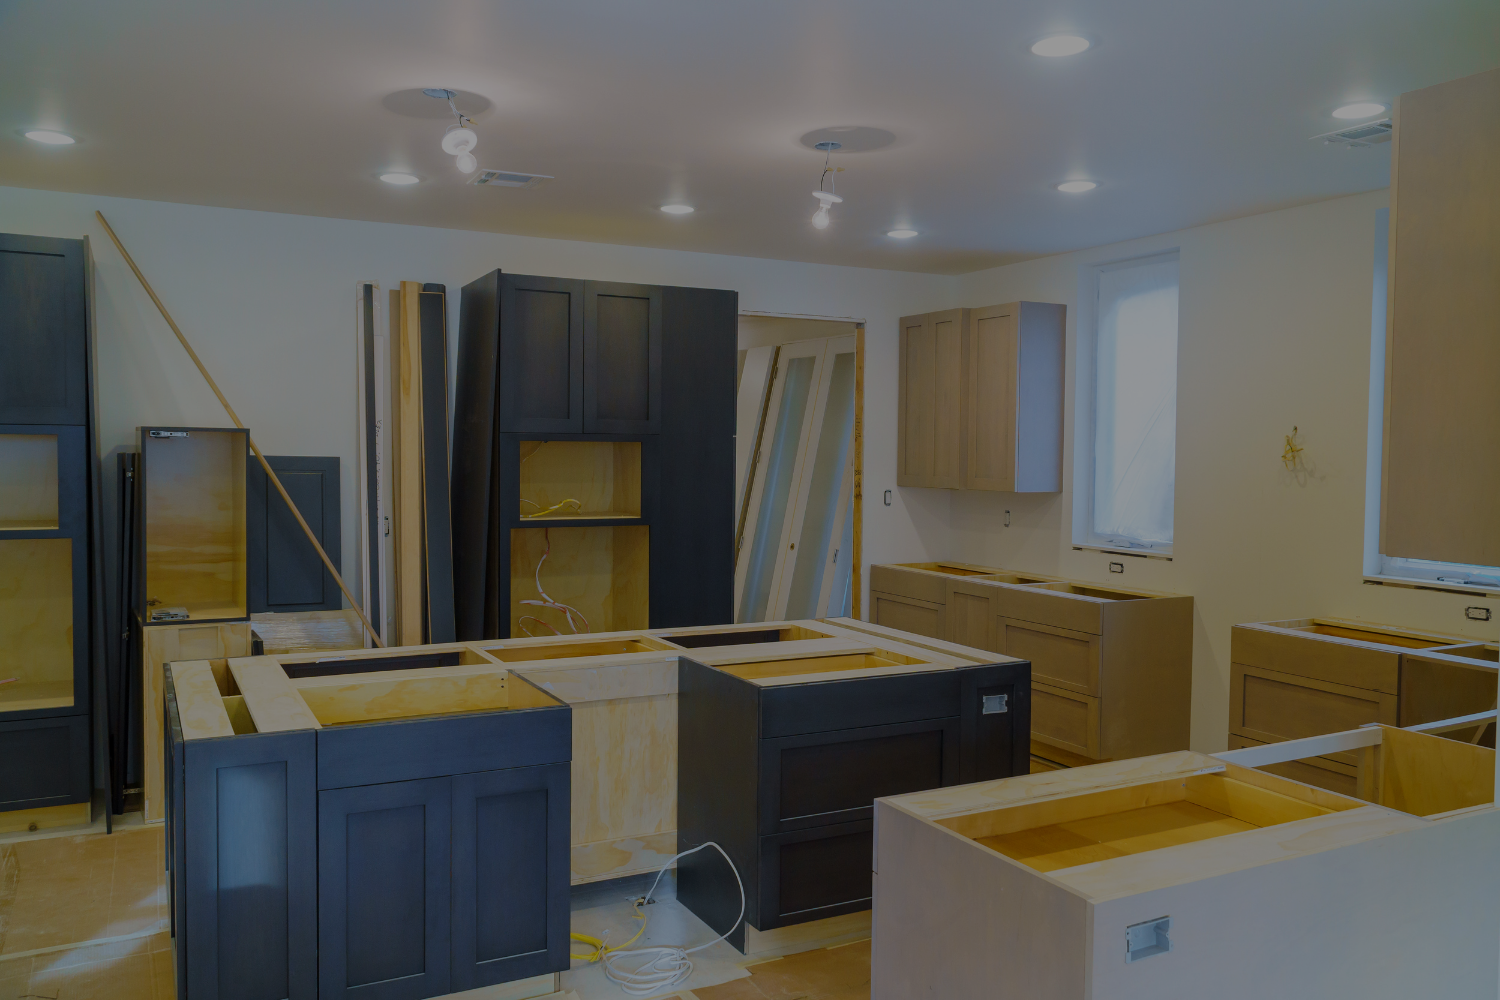 Cabinets 101 Start with a Simple Design